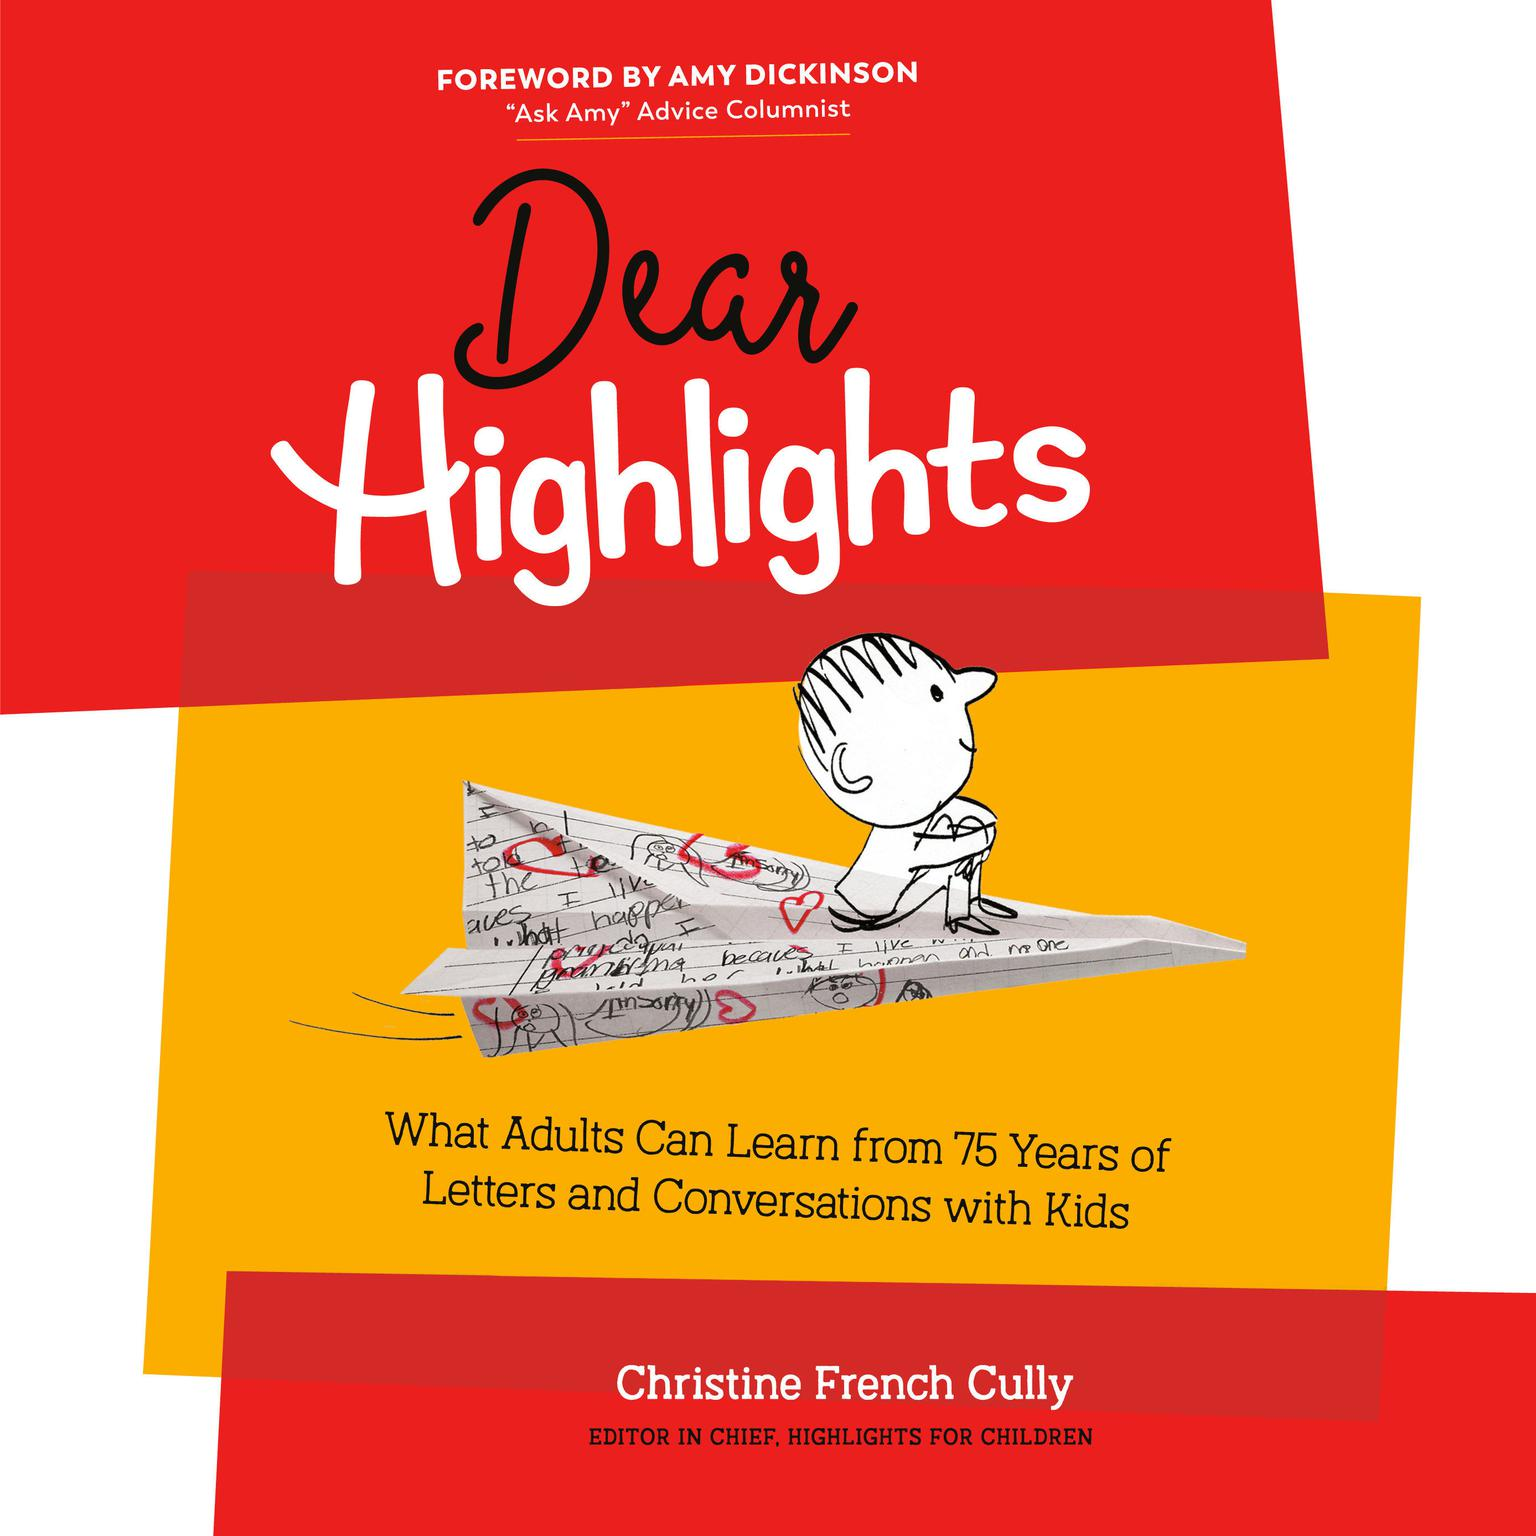 Dear Highlights: What Adults Can Learn from 75 Years of Letters and Conversations with Kids Audiobook, by Christine French Cully